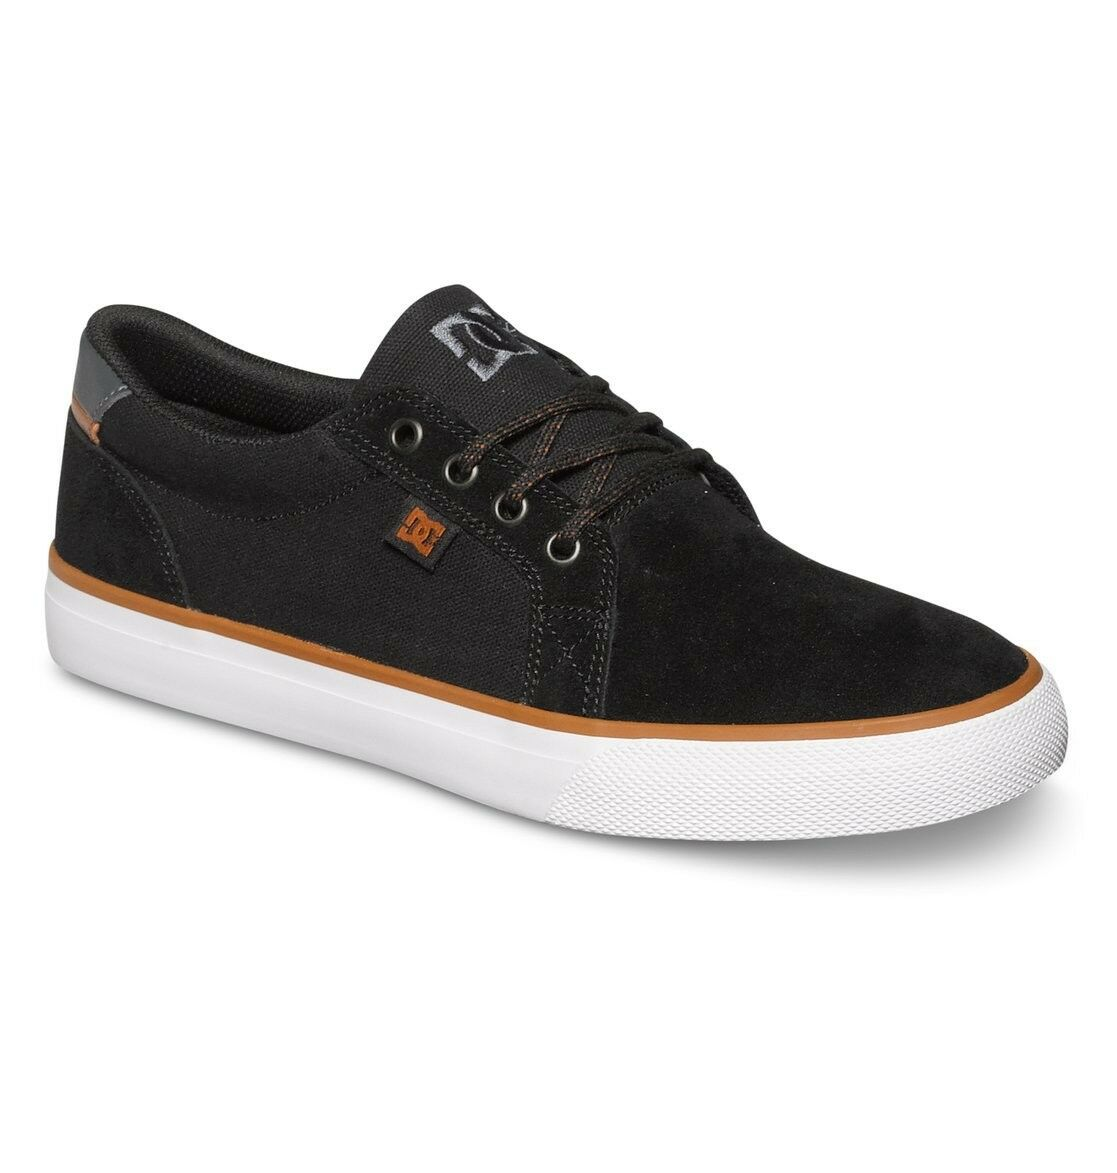 Neu DC Shoes Council SD Leder Sneakers Skaterschuhe Turnschuhe black schwarz